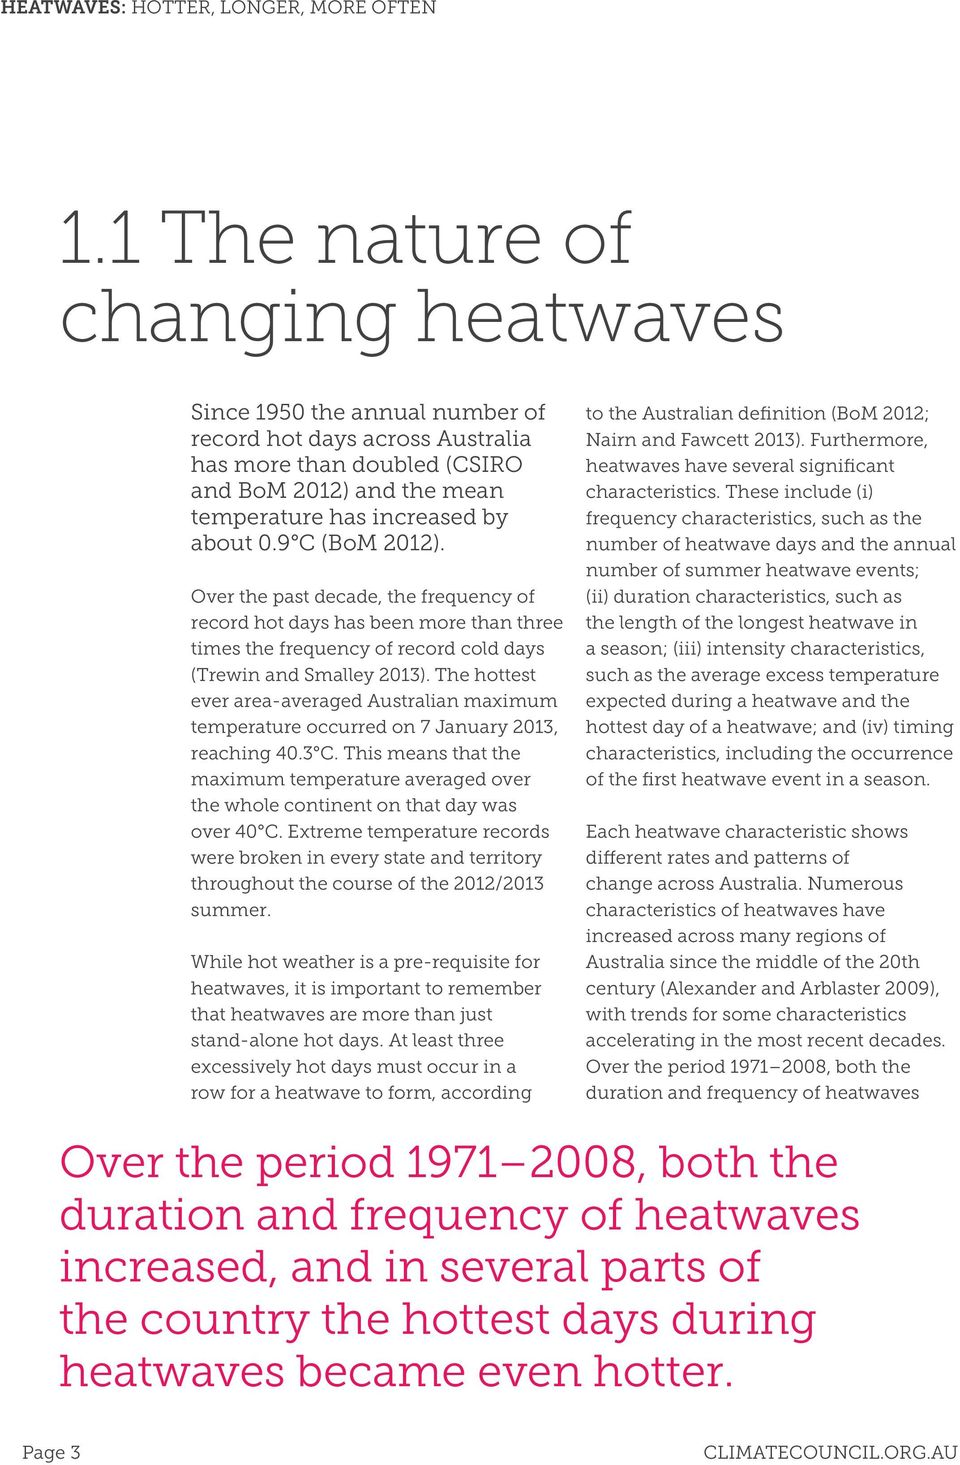 9 C (BoM 2012). Over the past decade, the frequency of record hot days has been more than three times the frequency of record cold days (Trewin and Smalley 2013).